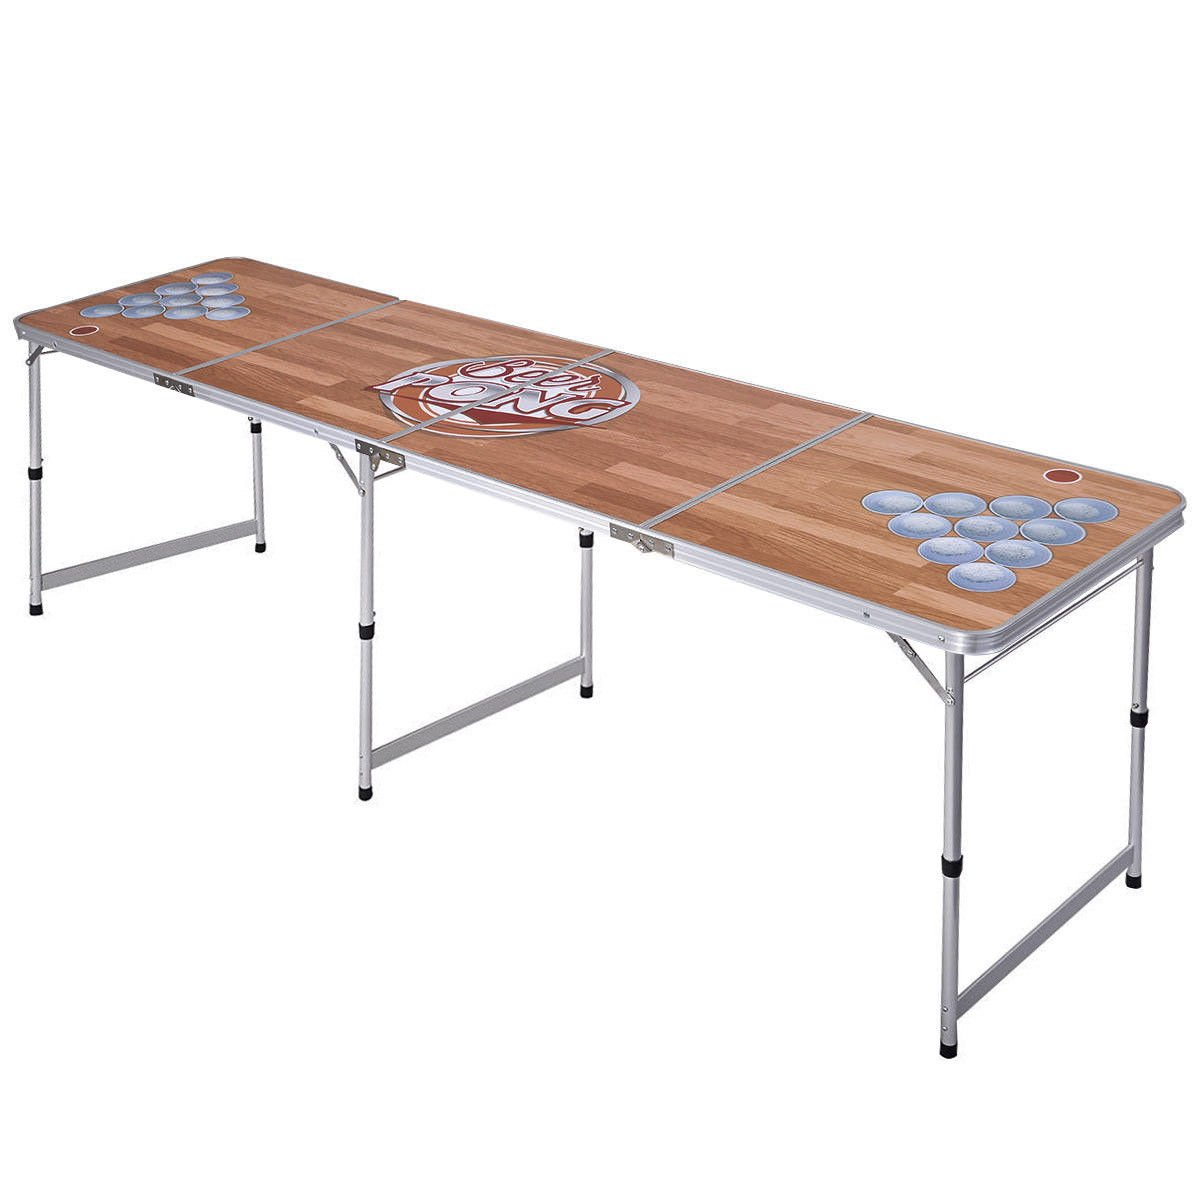 Giantex Foldable Aluminum 8' Folding Beer Pong Table Portable Outdoor Indoor Game Party